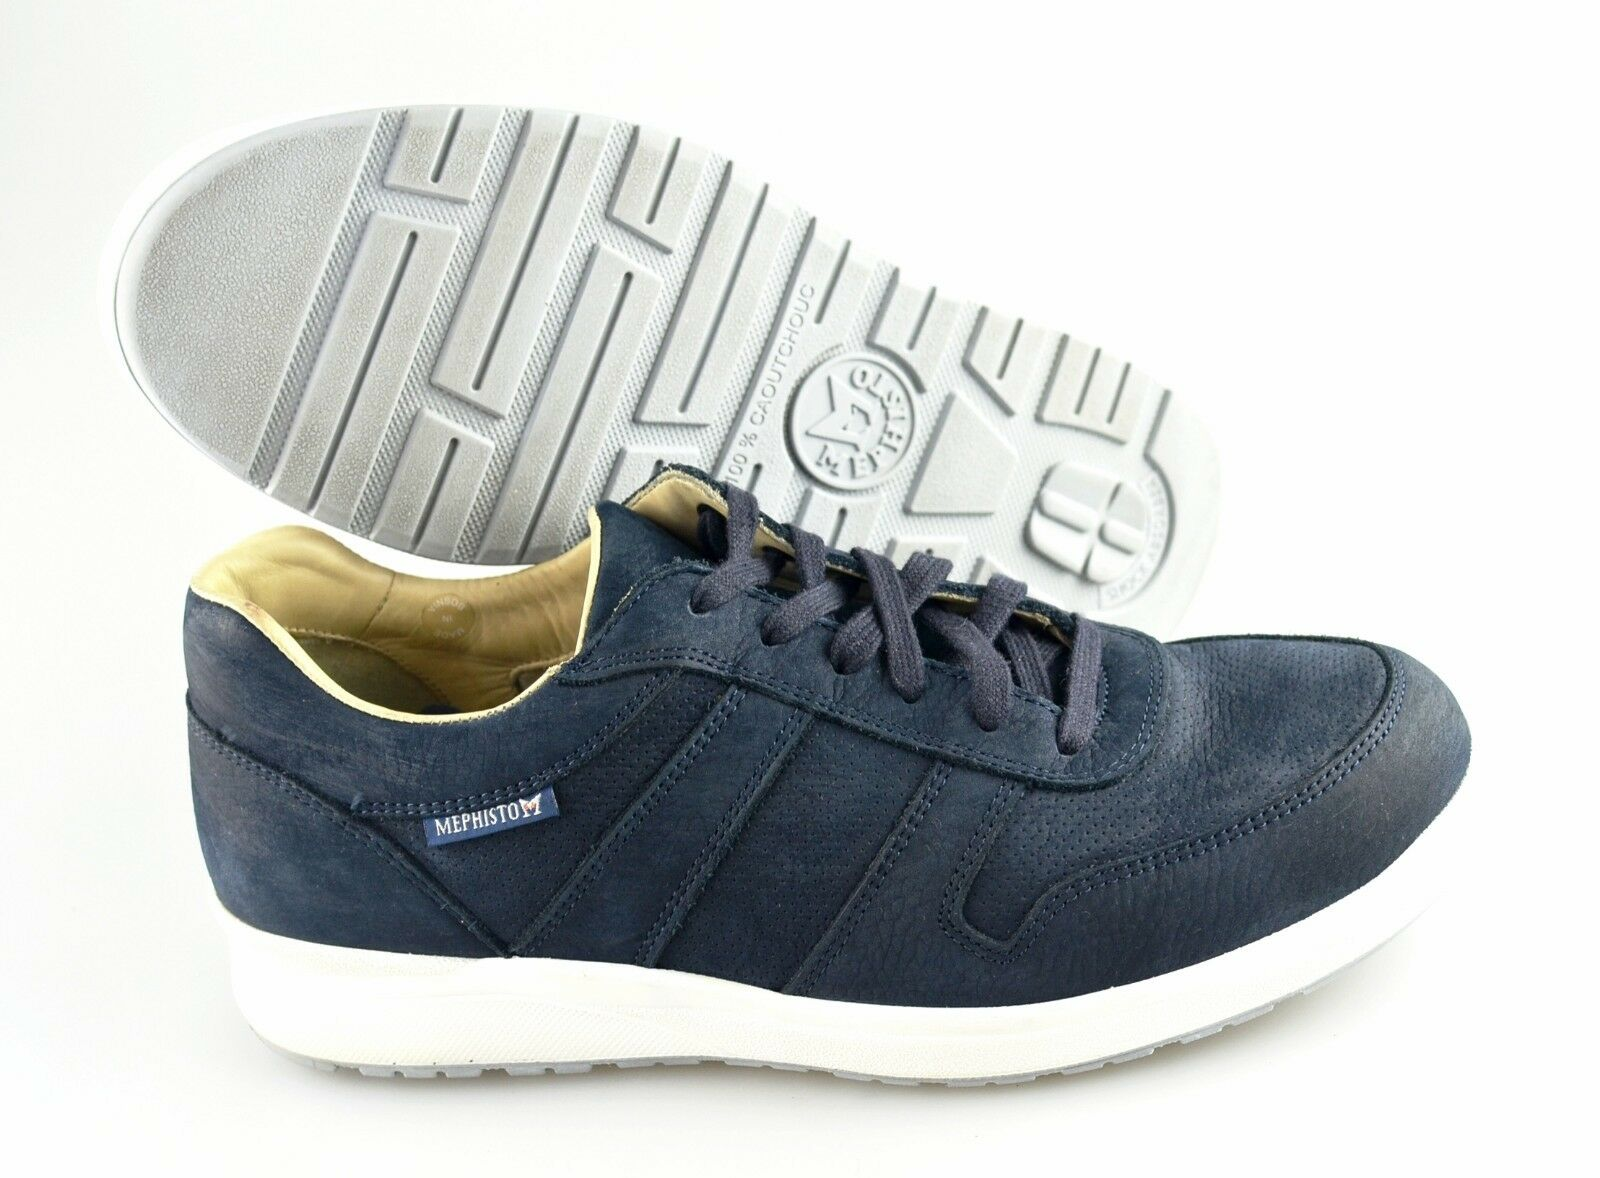 R - Men's MEPHISTO 'Vito' bluee Leather Sneakers Size US 8 EUR 7.5